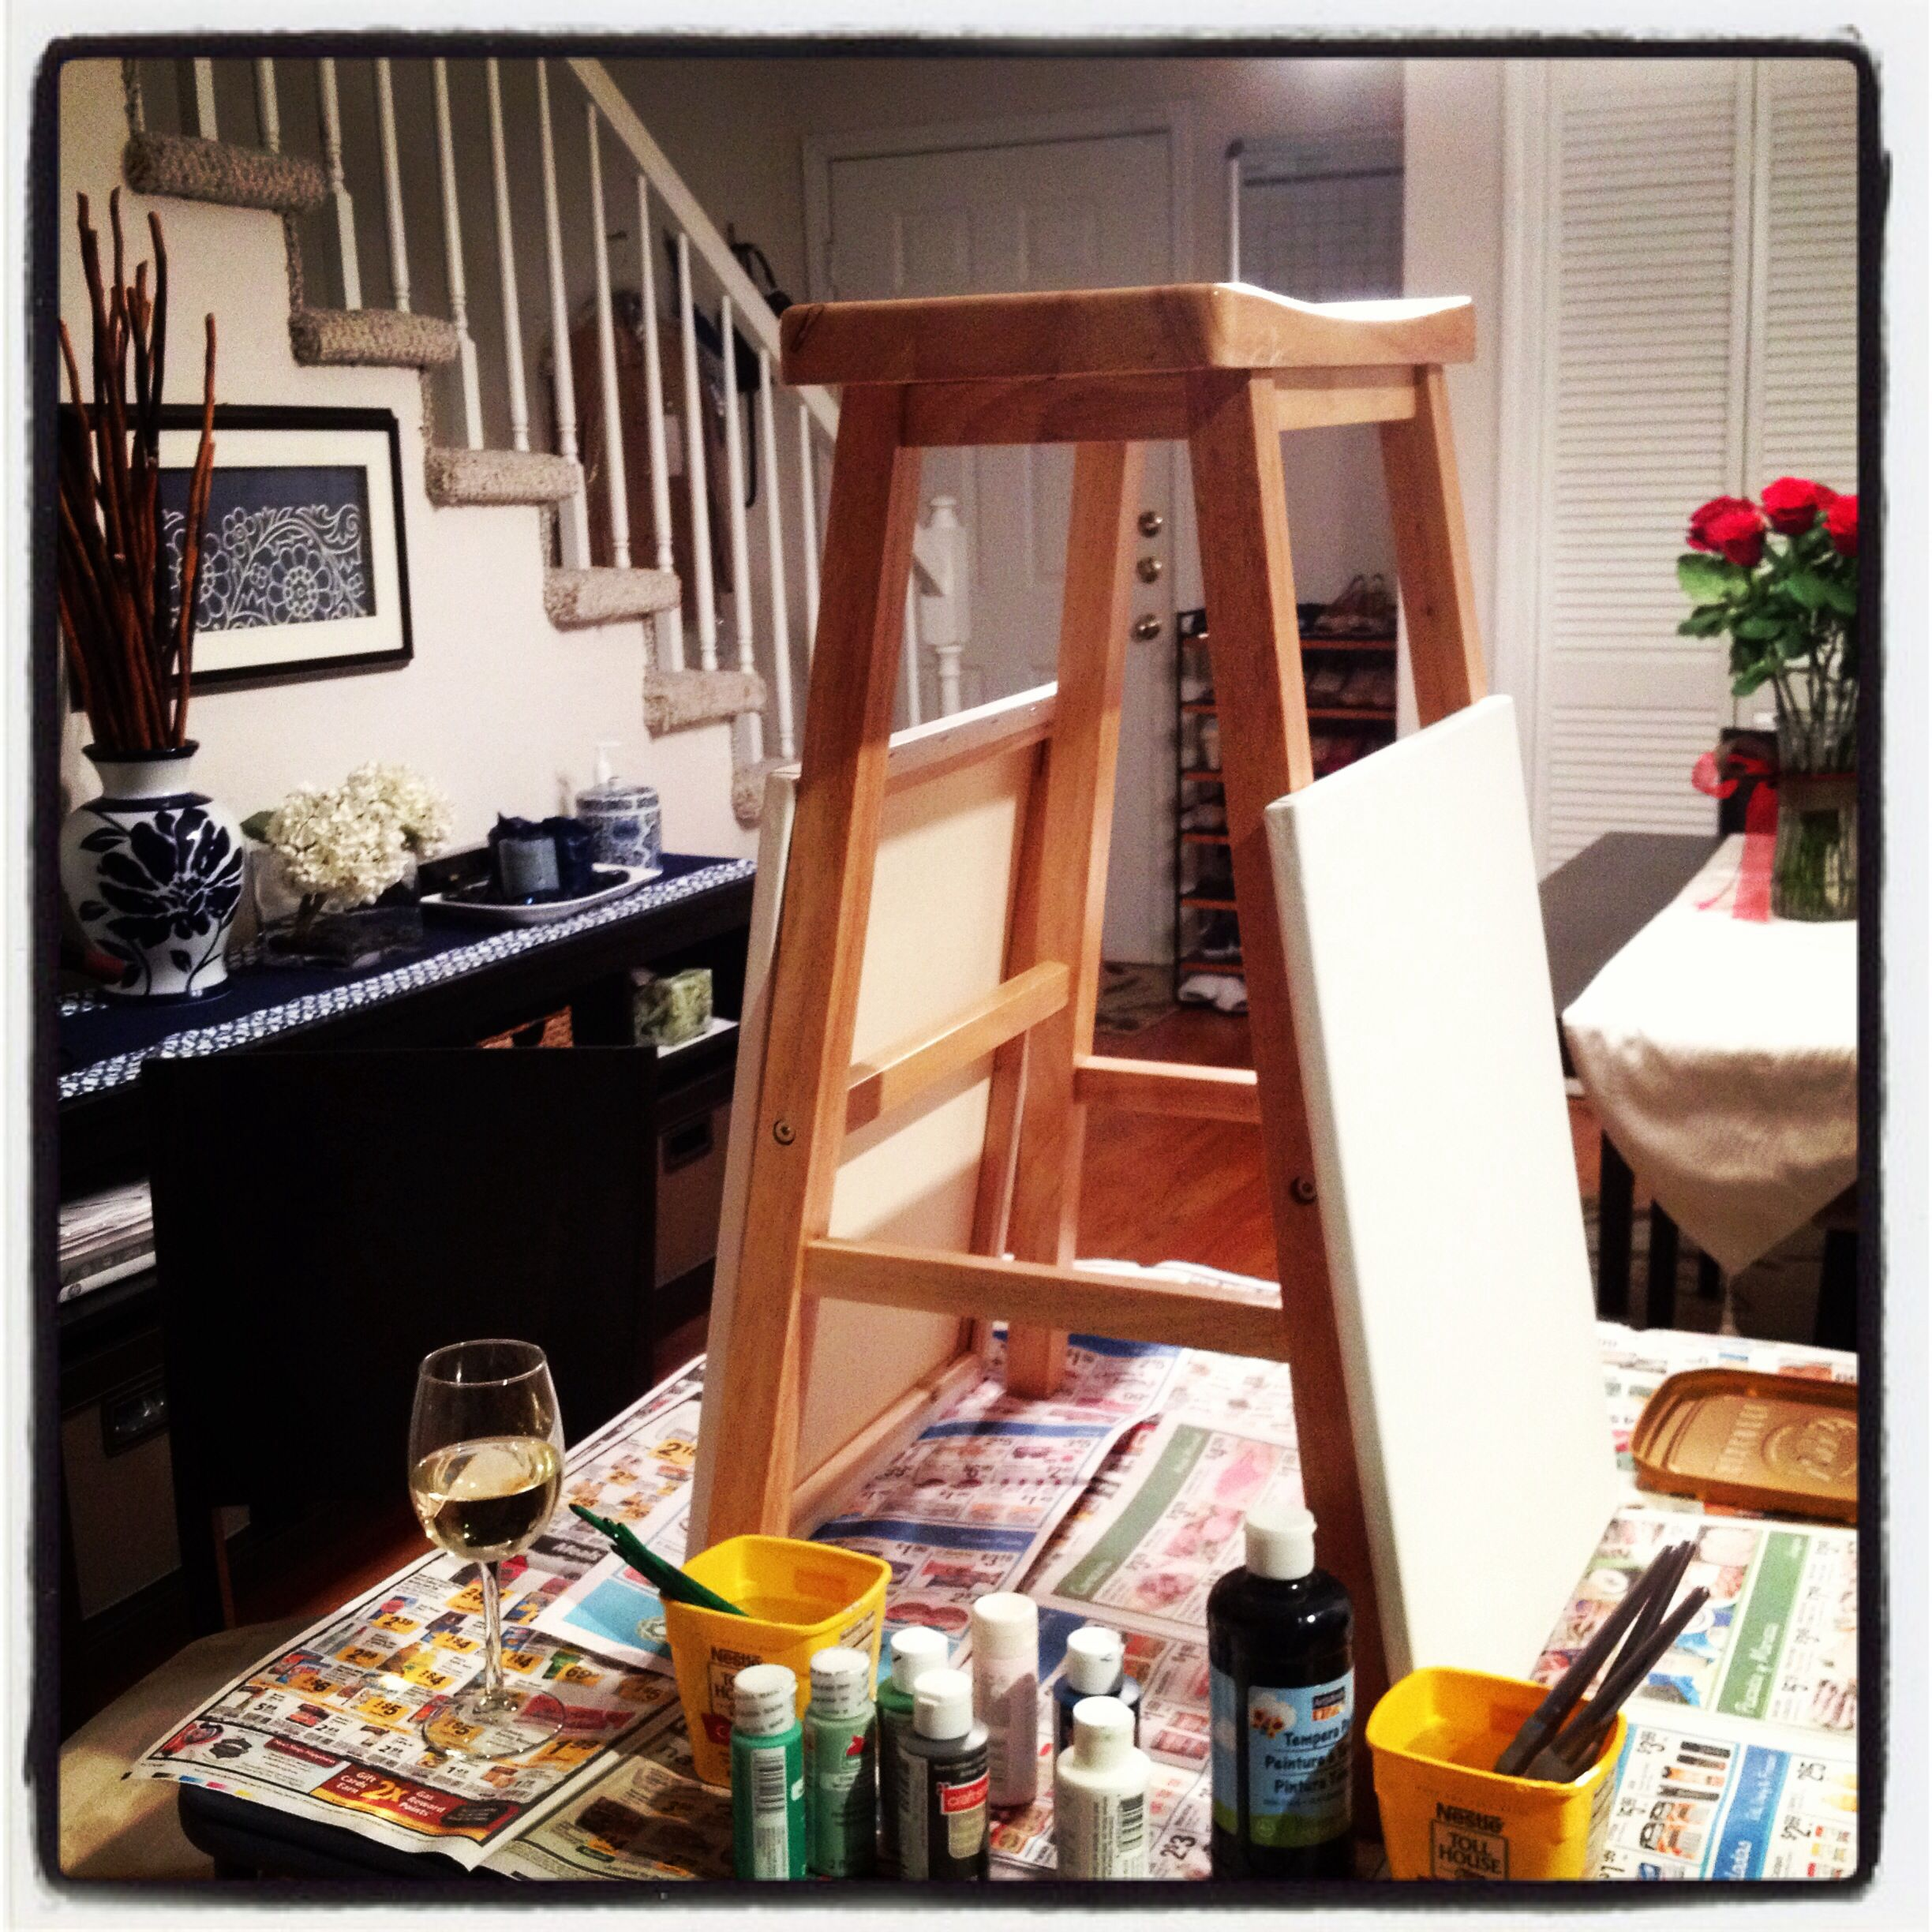 A DIY paint night, for a fraction of the cost of BYOB classes. Notice the stool use! Great for a stay at home date night or girls night-in idea. #dreamdates